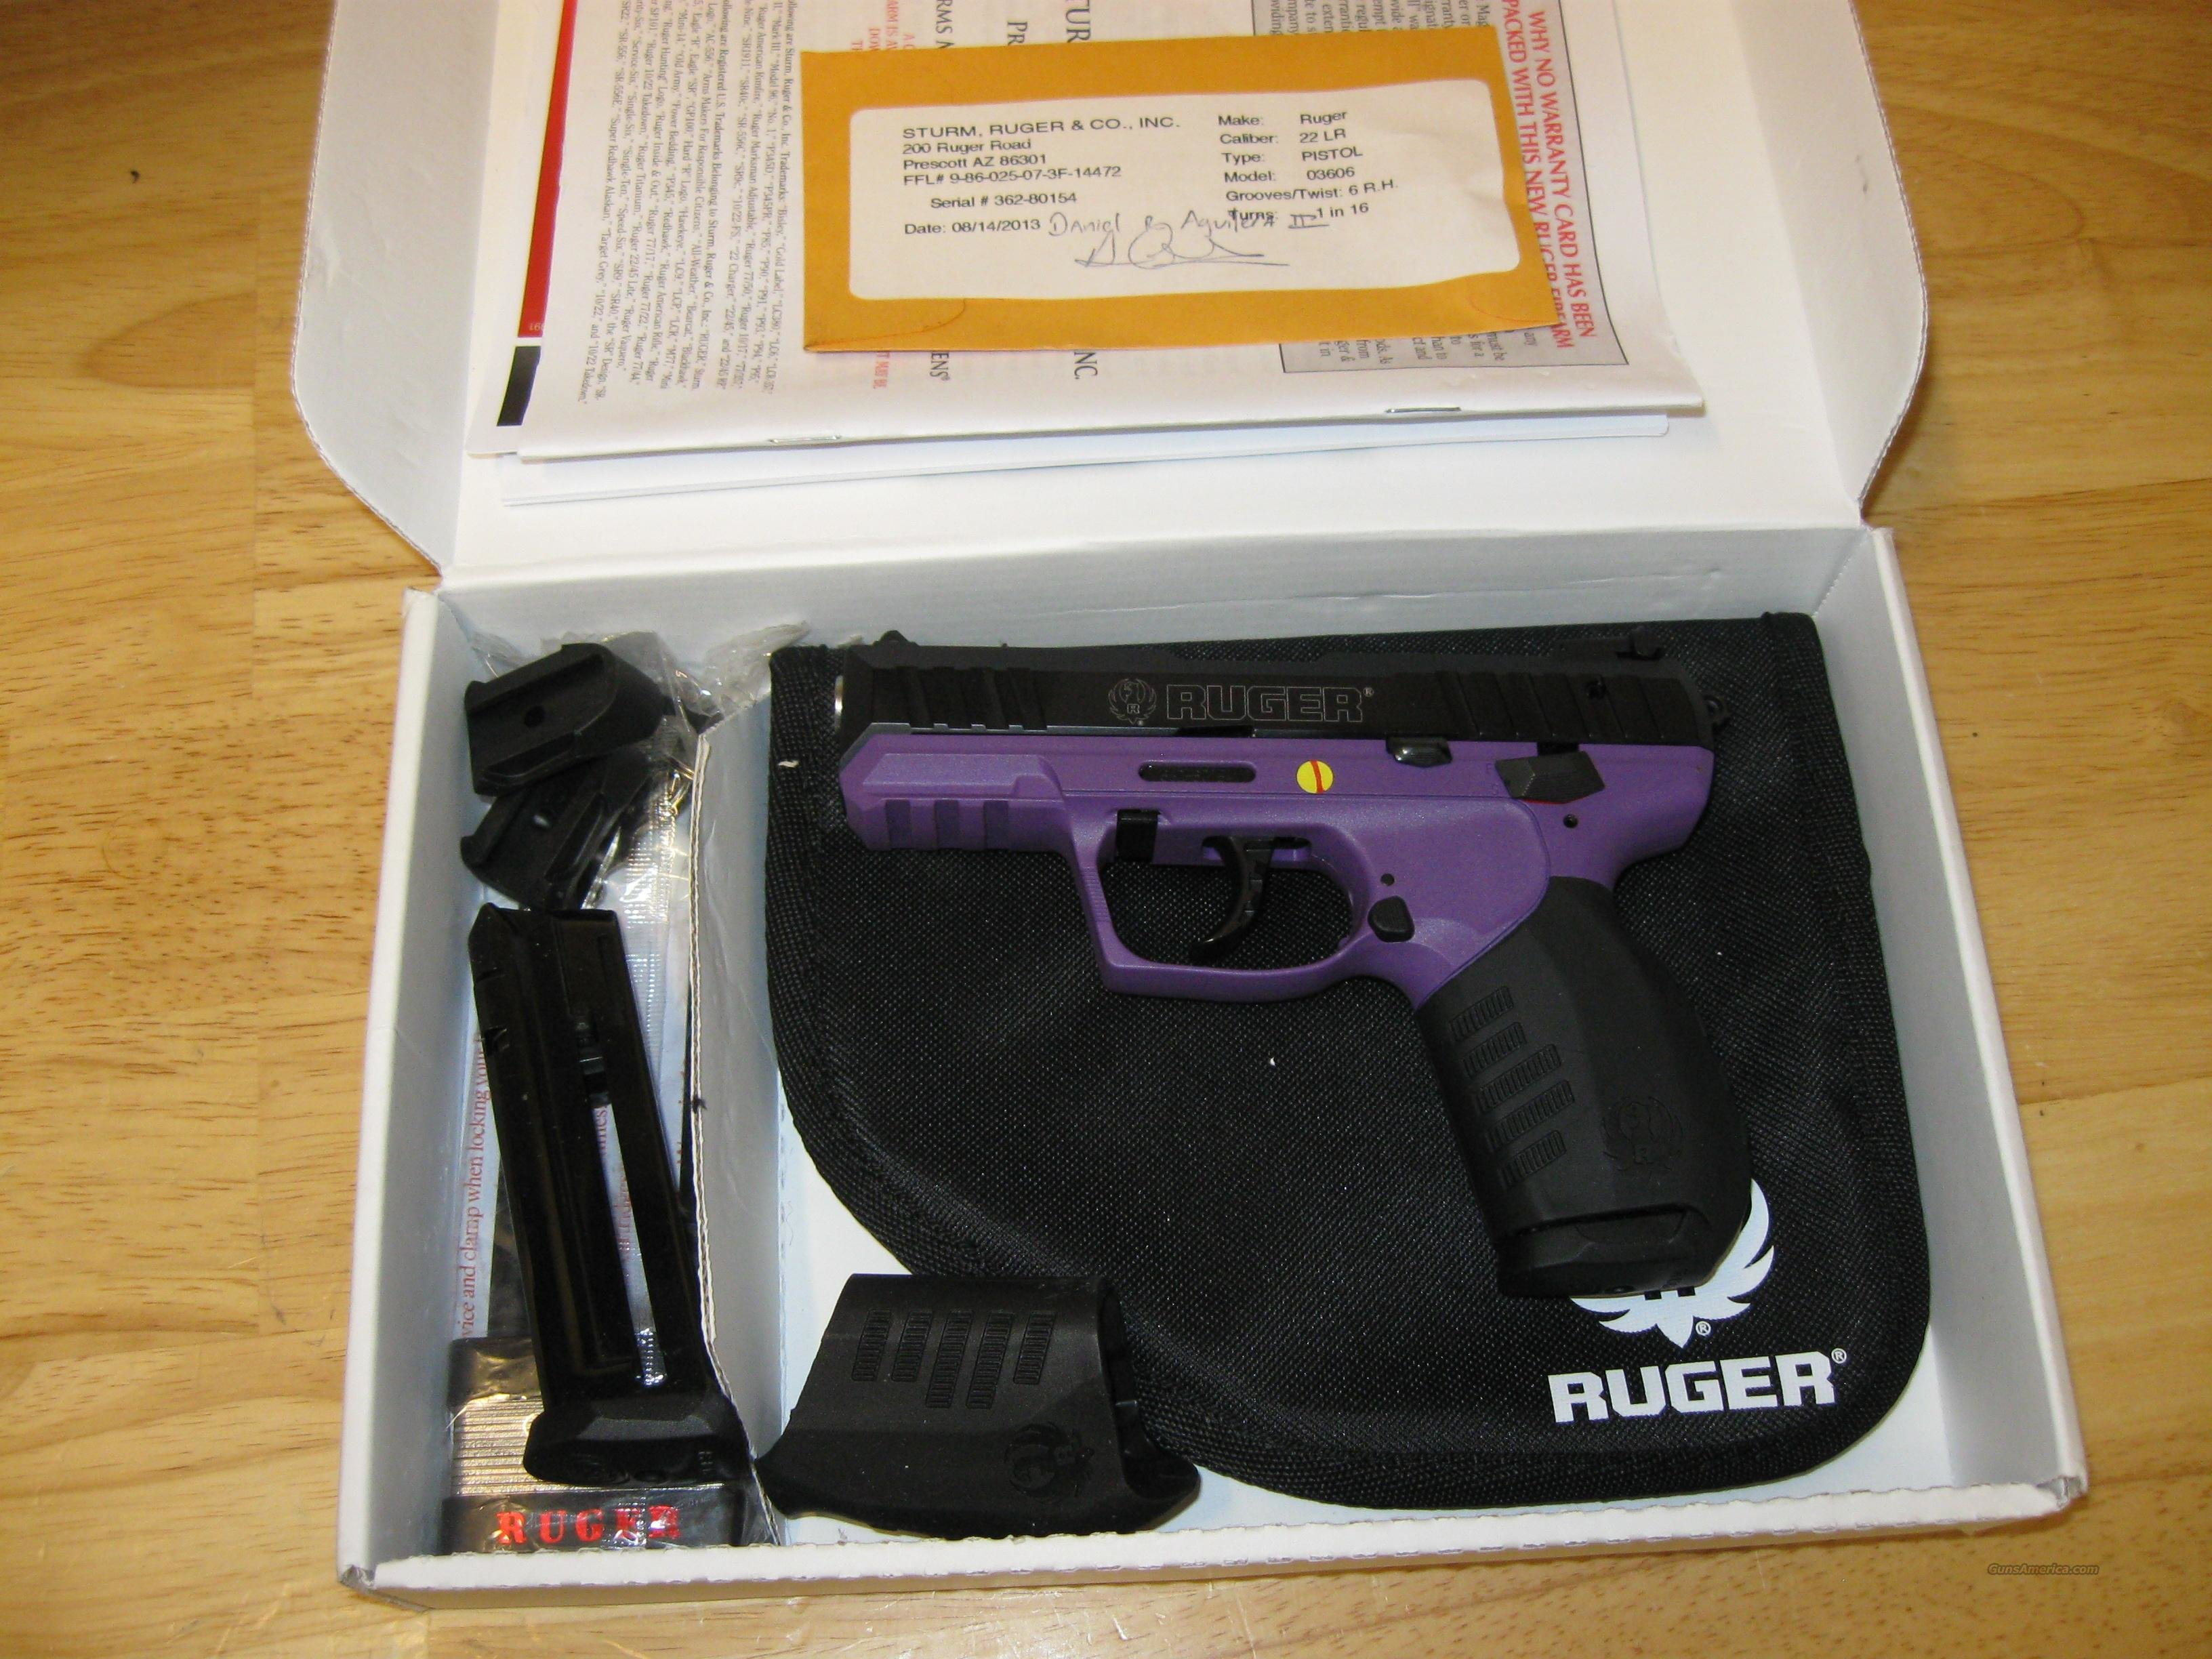 Ruger SR22 Lady Lilac Pistol 3606, 22 Long Rifle, 3.5 in, Purple Frame, Black Finish, 10 Rd  Guns > Pistols > Ruger Semi-Auto Pistols > SR9/SR40/SR45